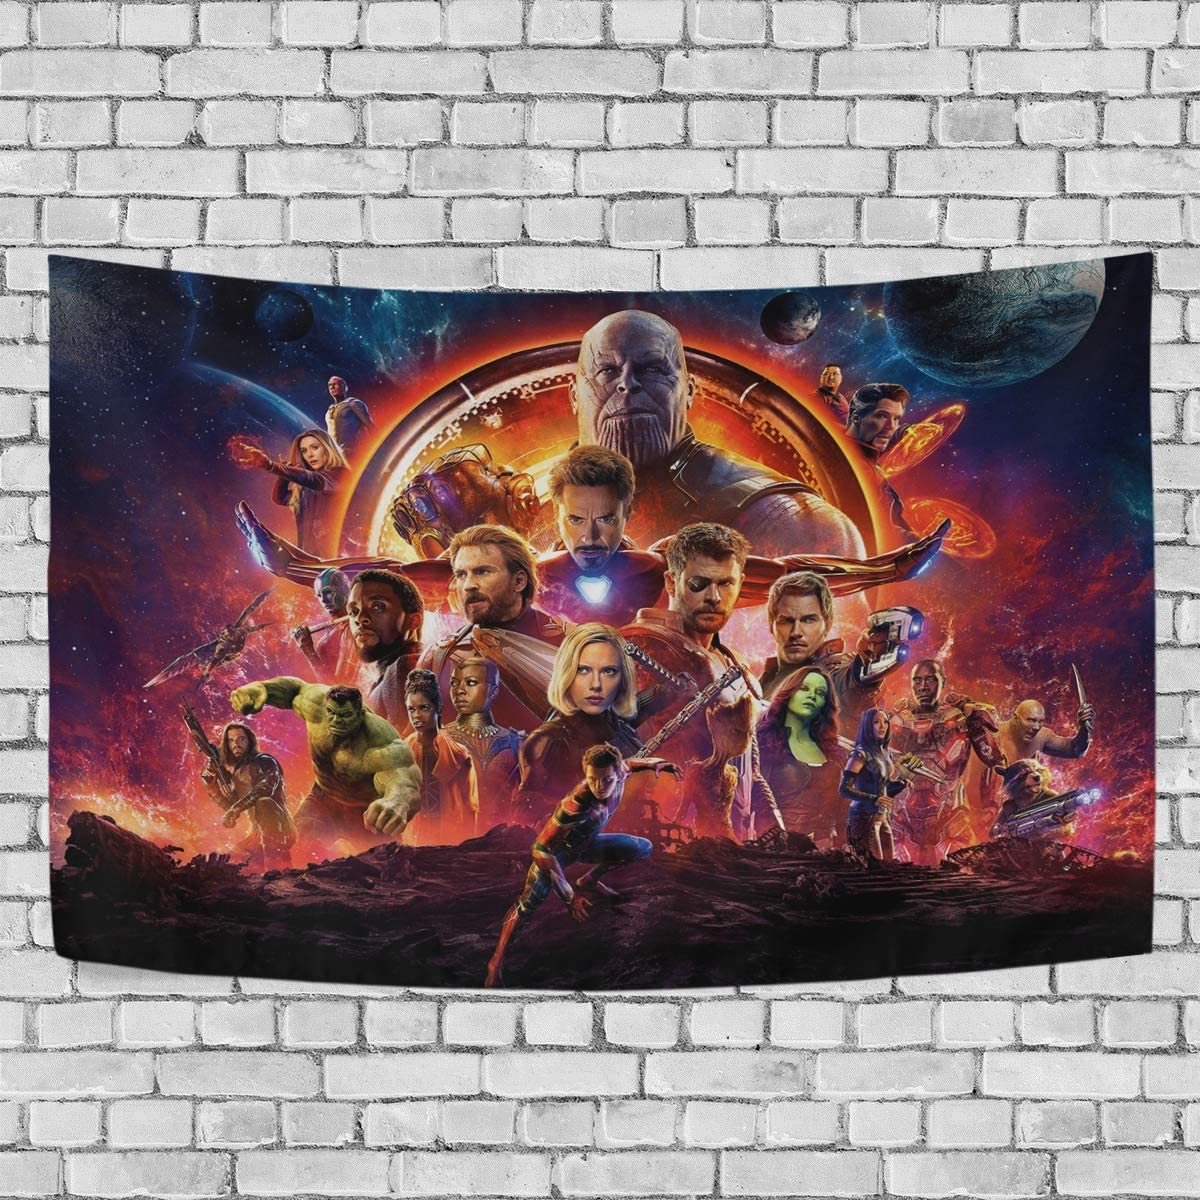 TRE ONE Superhero Avengers Starry Planet Colorful Tapestry Wall Hanging Decoration for Apartment Home Art Wall Tapestry for Bedroom Living Room Dorm 90 x 60 inches